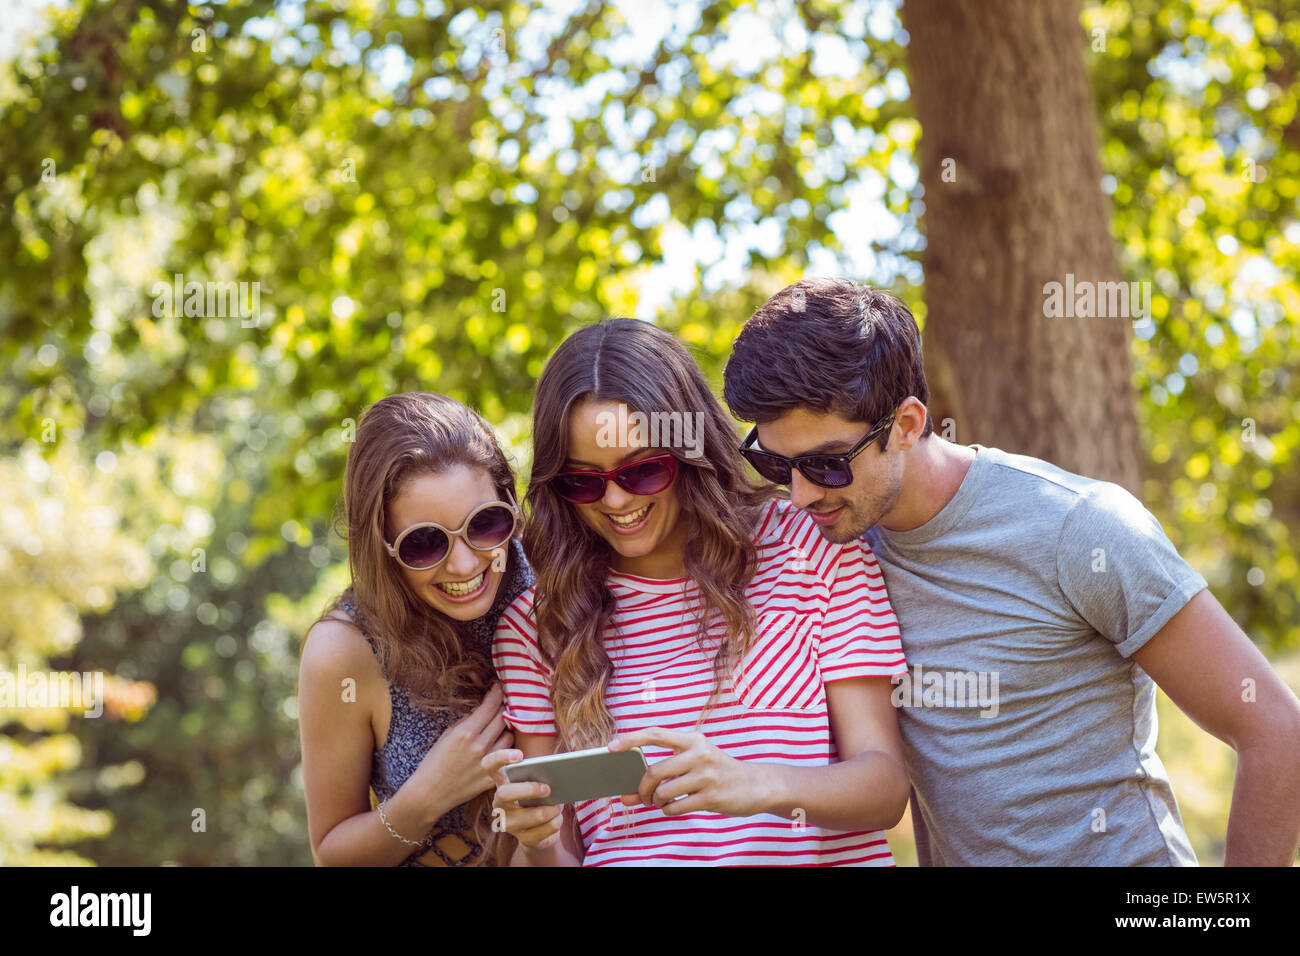 friends looking photos in a park - Stock Image